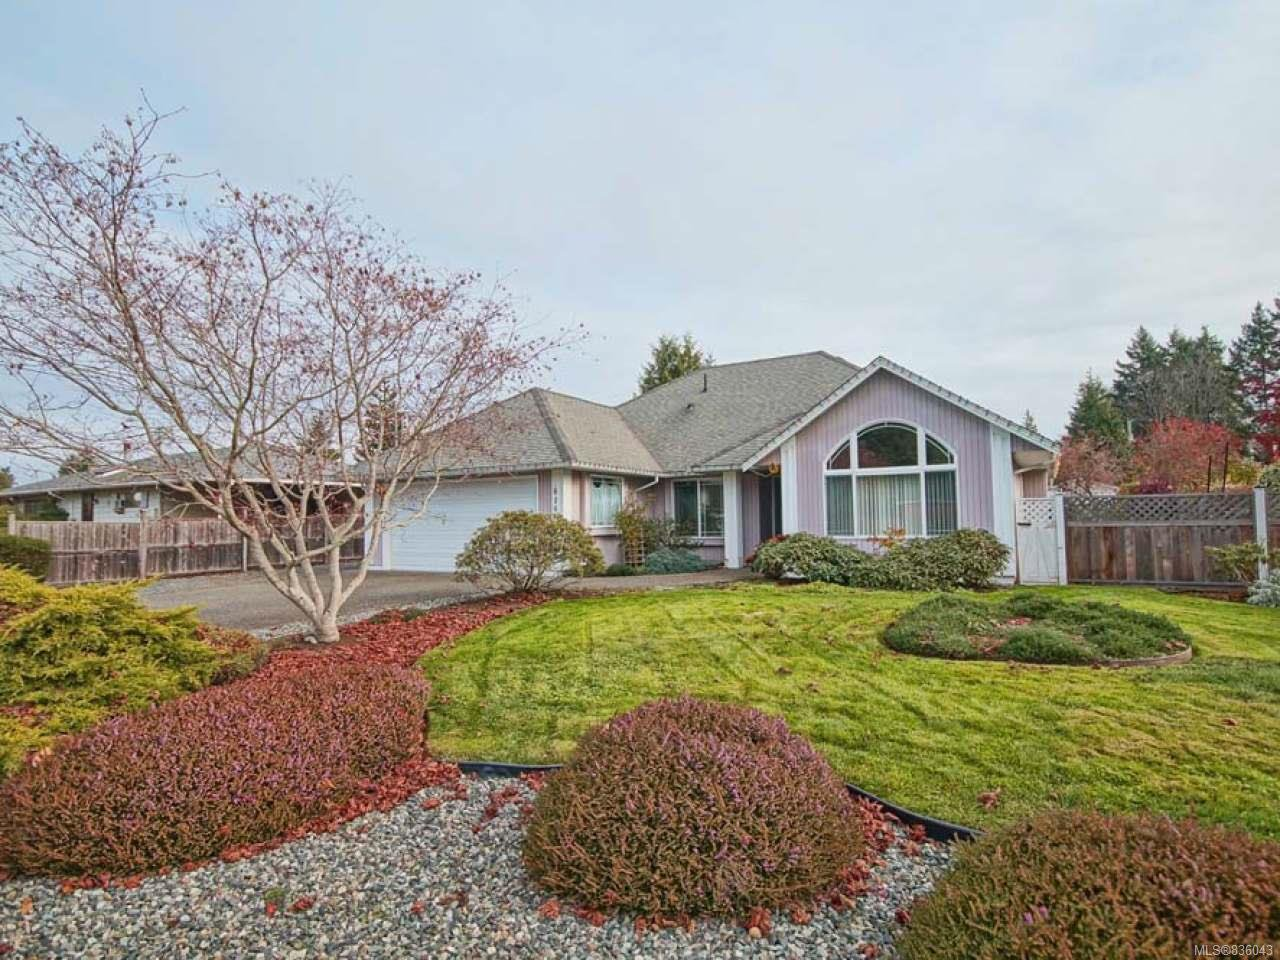 Main Photo: 819 PATRICK DRIVE in FRENCH CREEK: PQ French Creek Single Family Detached for sale (Parksville/Qualicum)  : MLS®# 836043